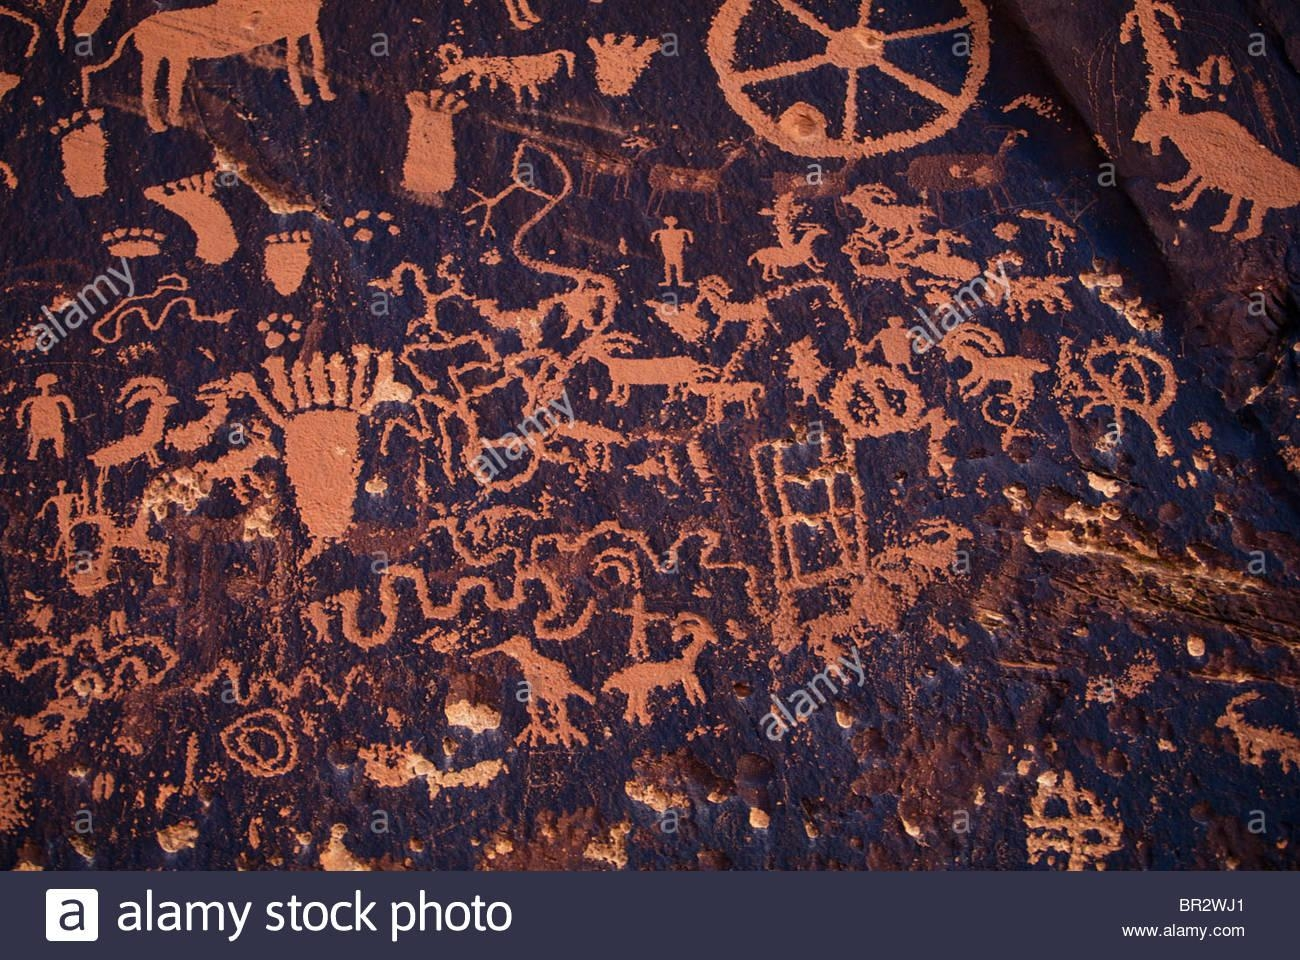 Native American Cave Art/wall Drawings Stock Photo, Royalty Free pertaining to Native American Wall Art